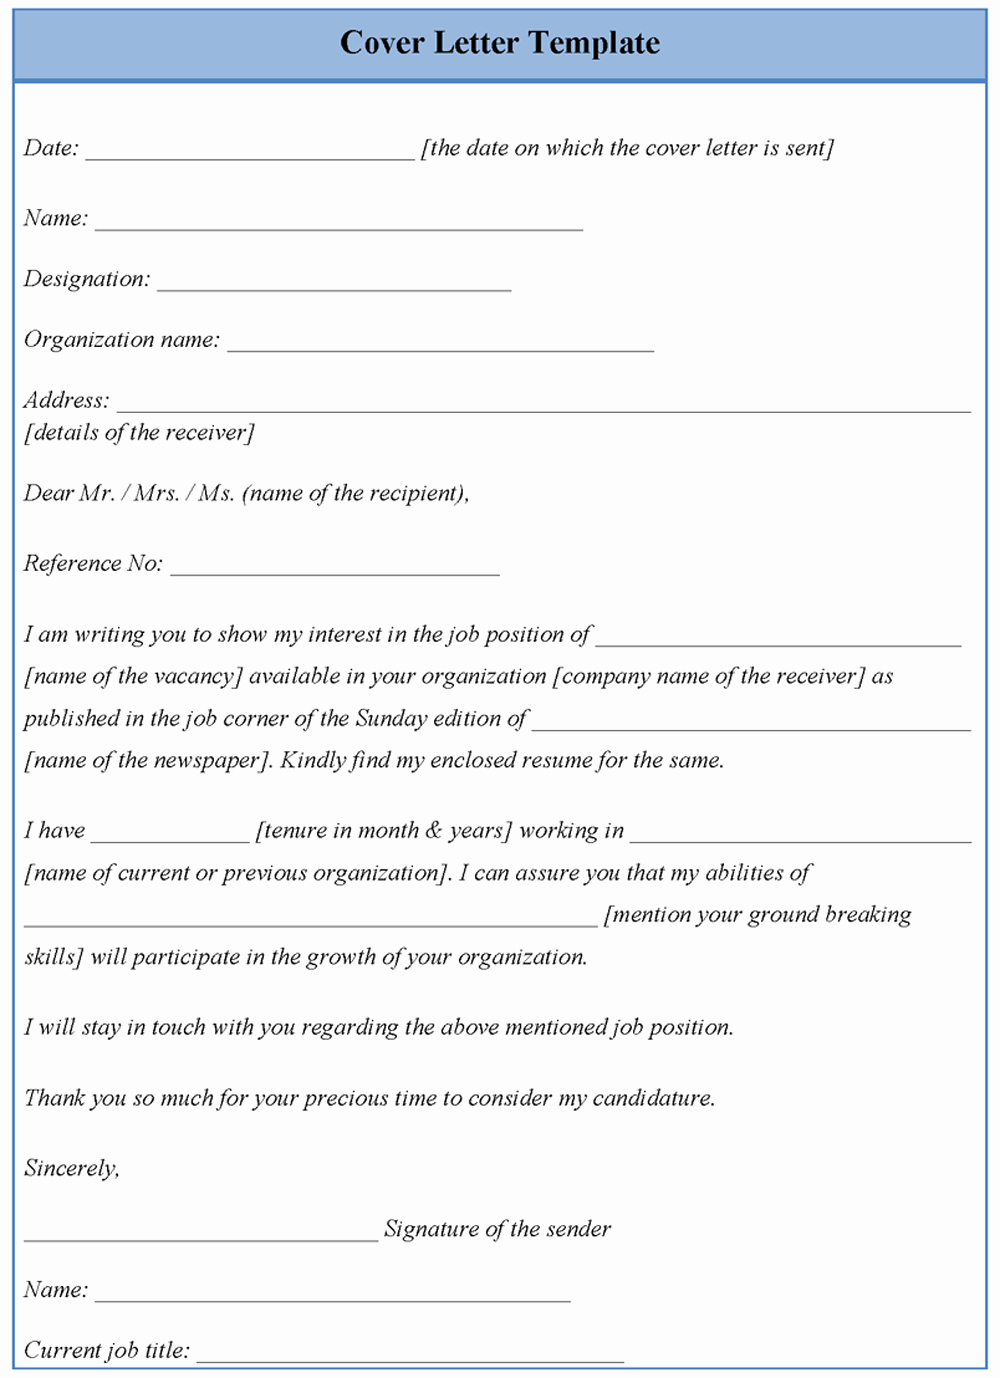 Template for Cover Letter Examples Of Cover Letter